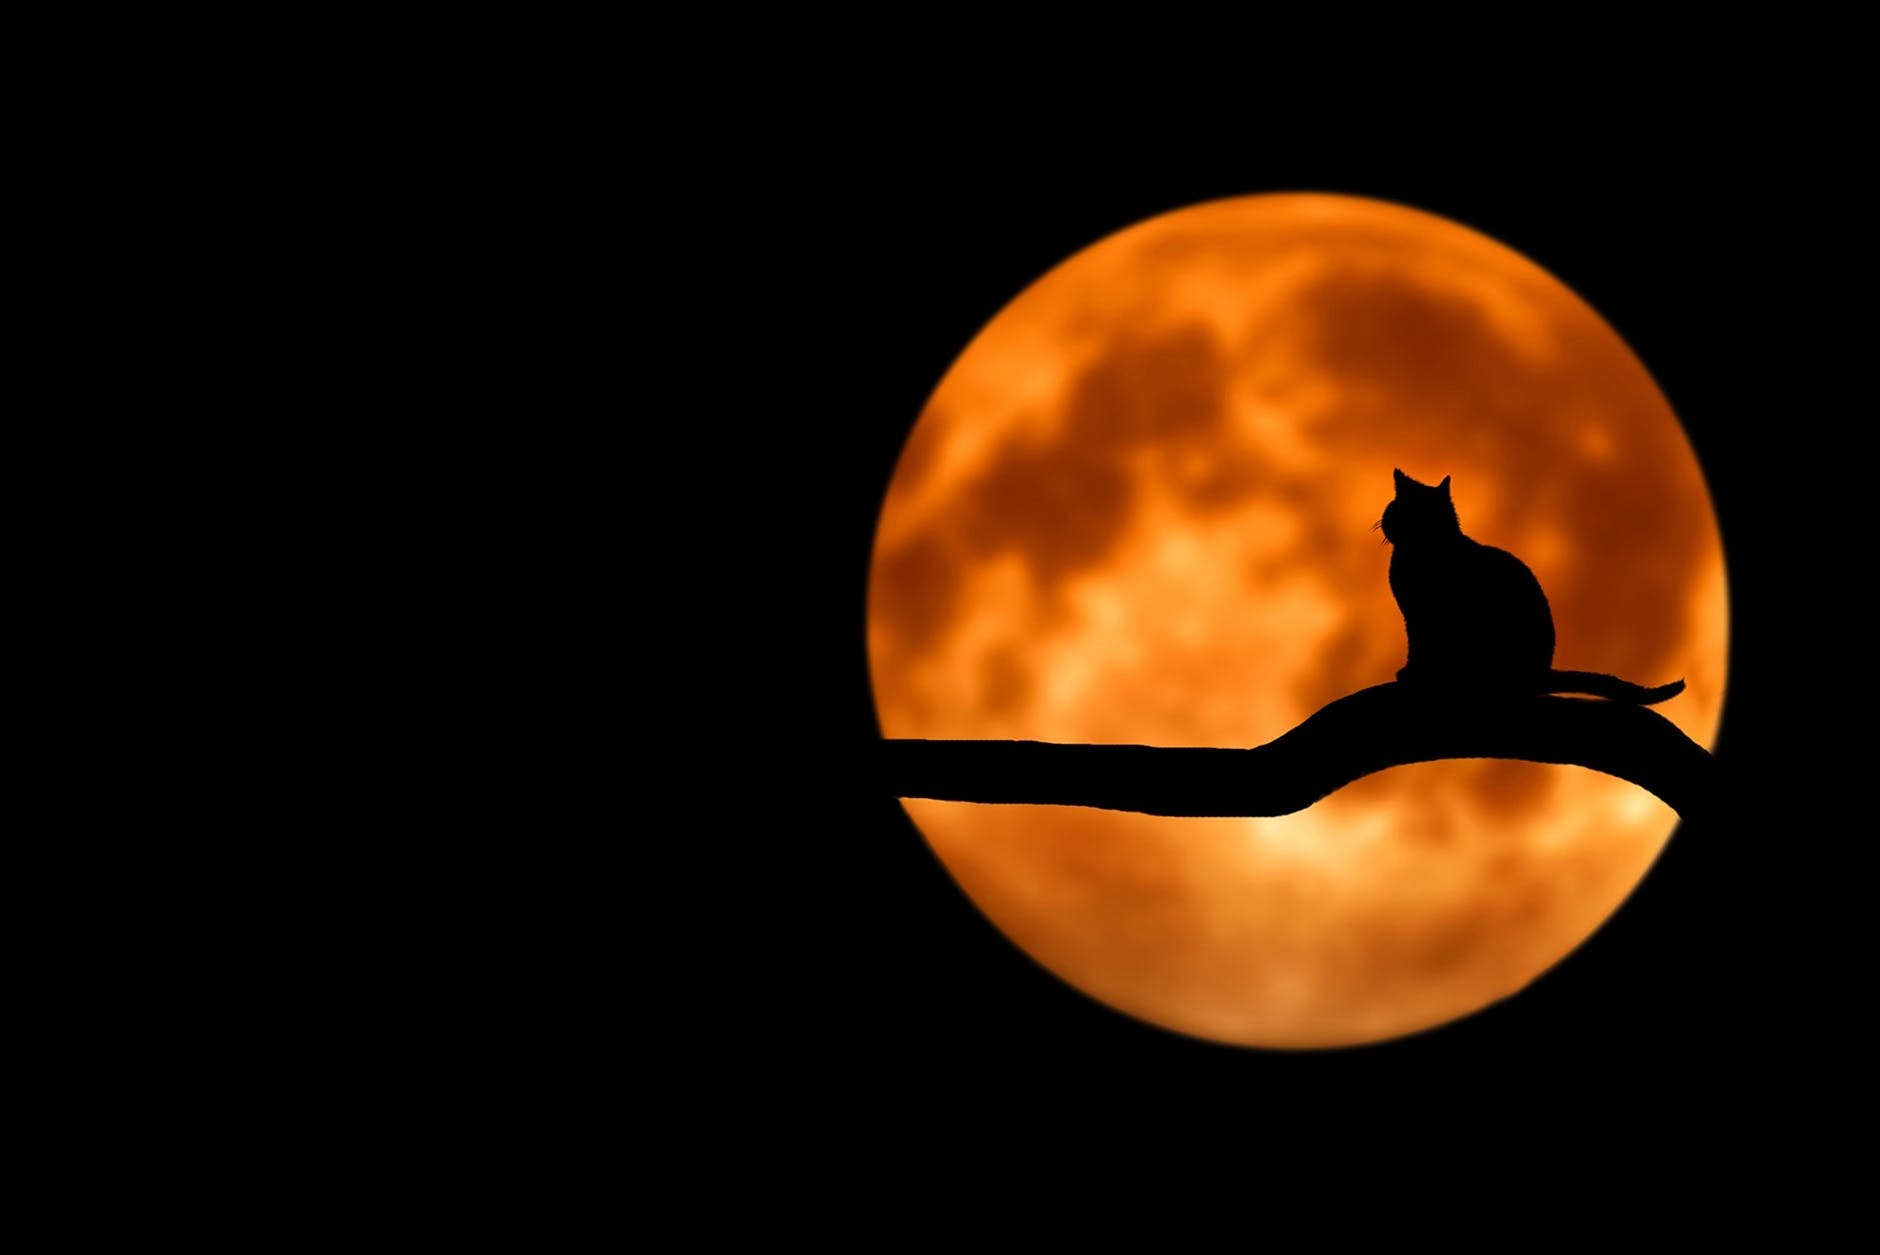 full orange moon with cat silhouetted on branch